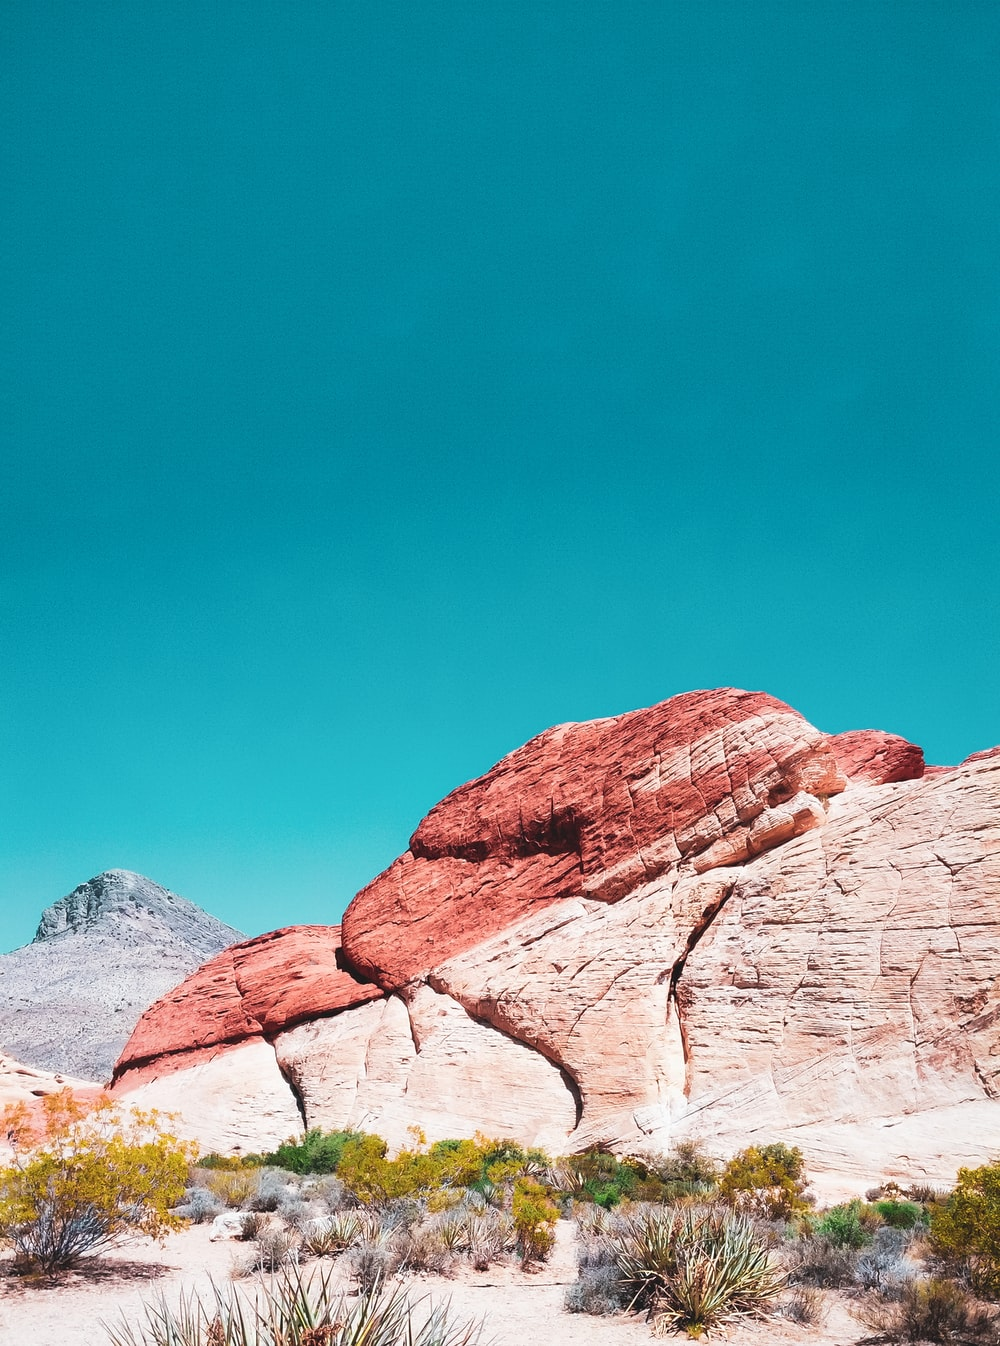 brown rocky mountain under blue sky during daytime